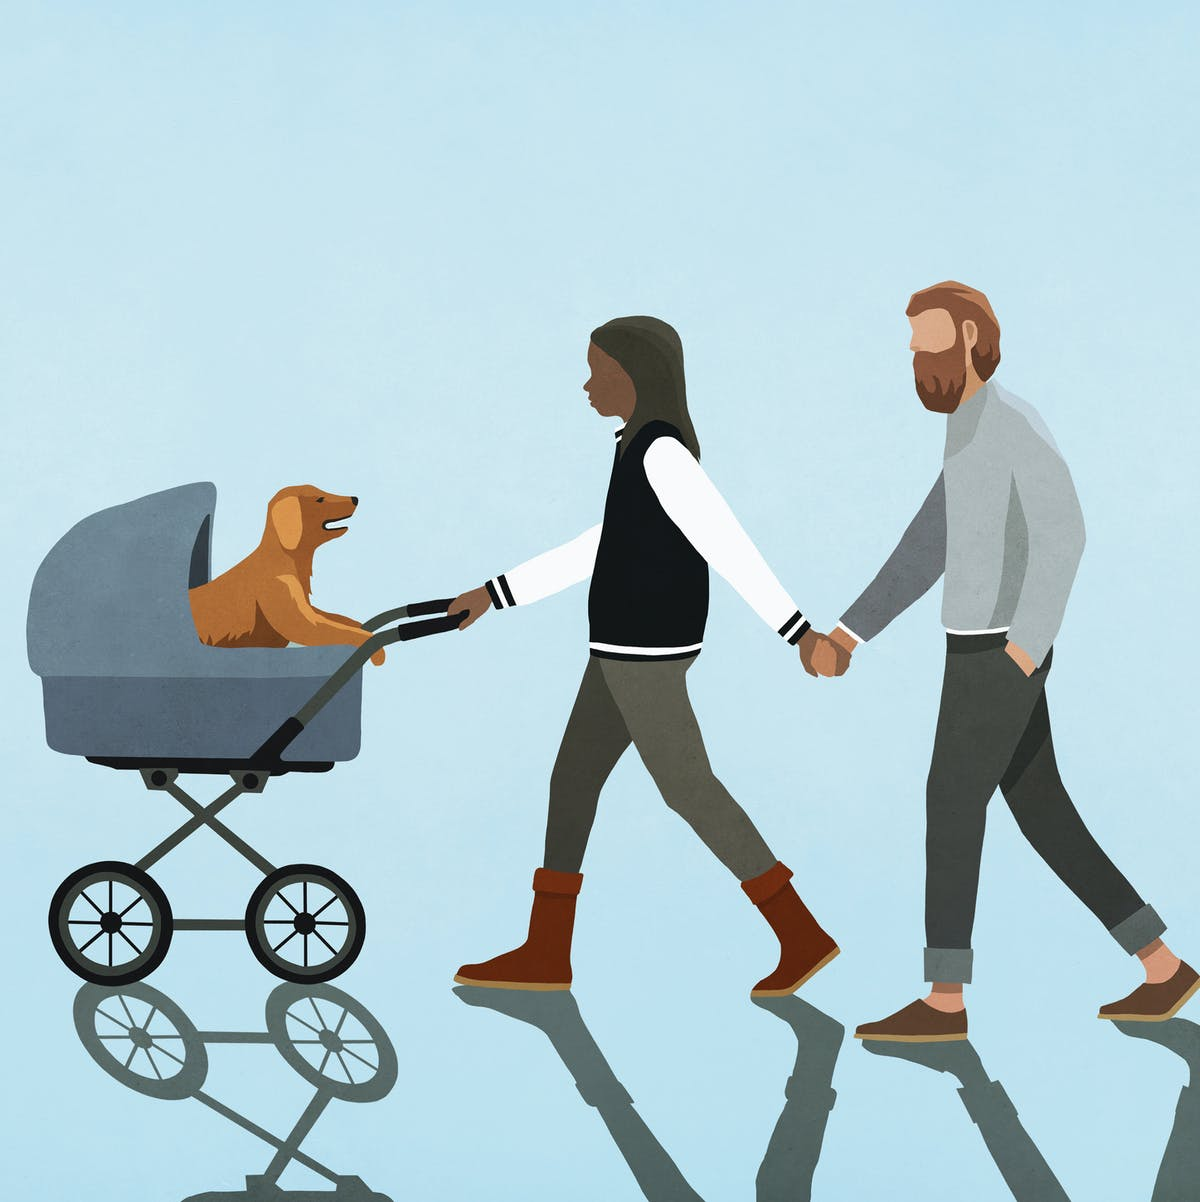 3 reasons why being around pets can make you happier and healthier